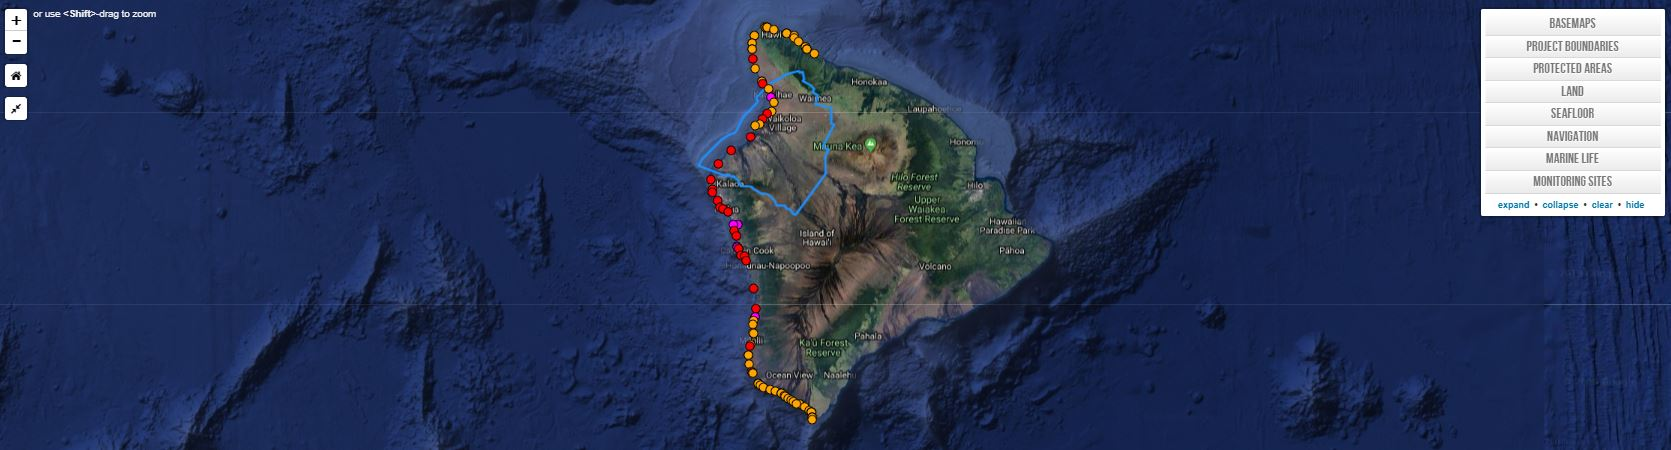 West Hawaiʻi HFA Map Viewer